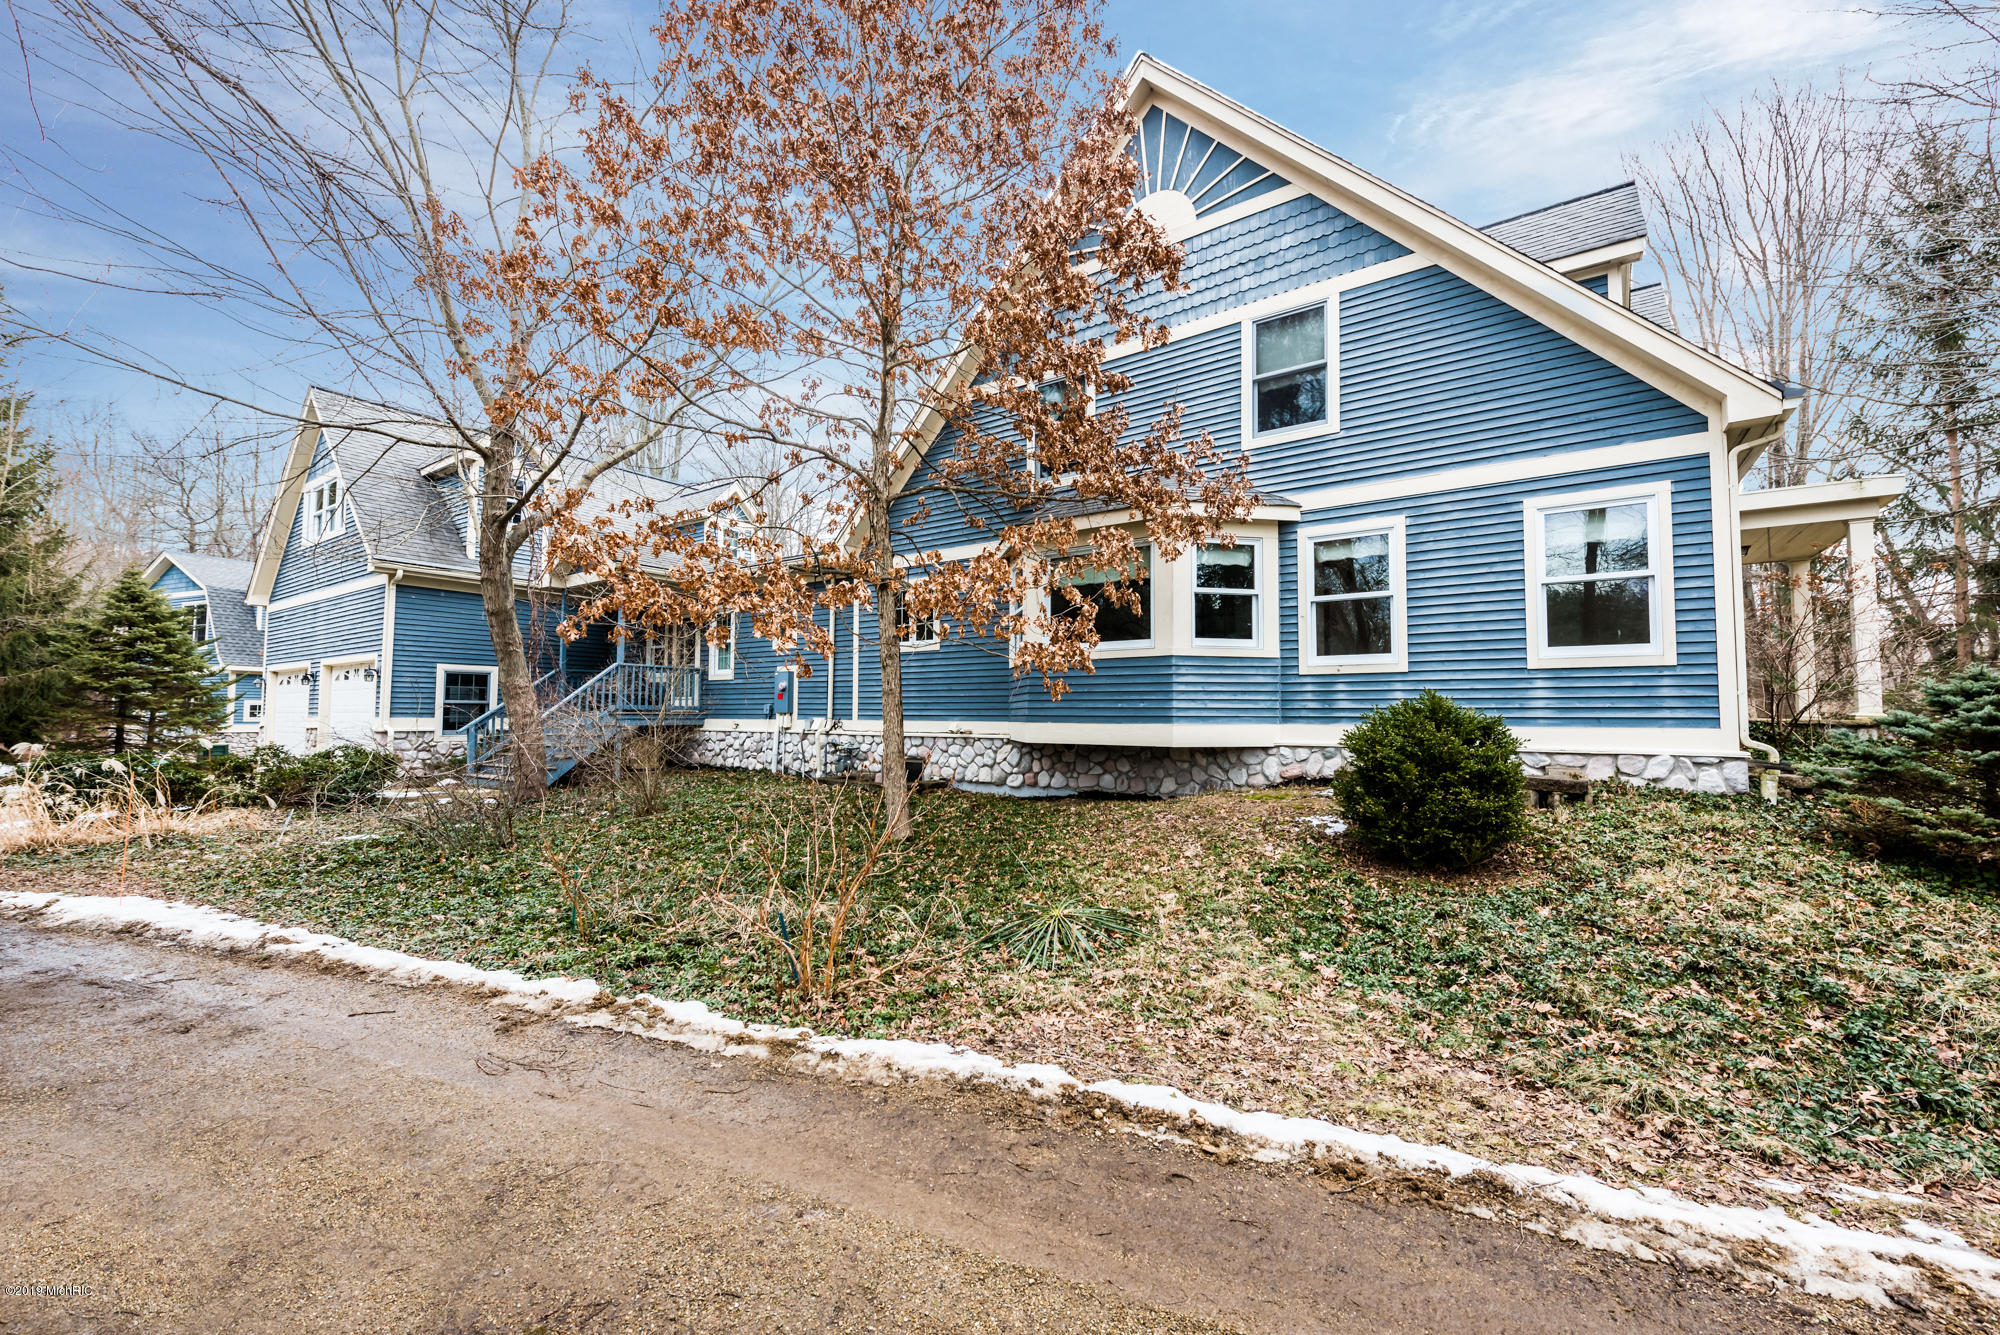 13968 RED ARROW HIGHWAY, THREE OAKS, MI 49128